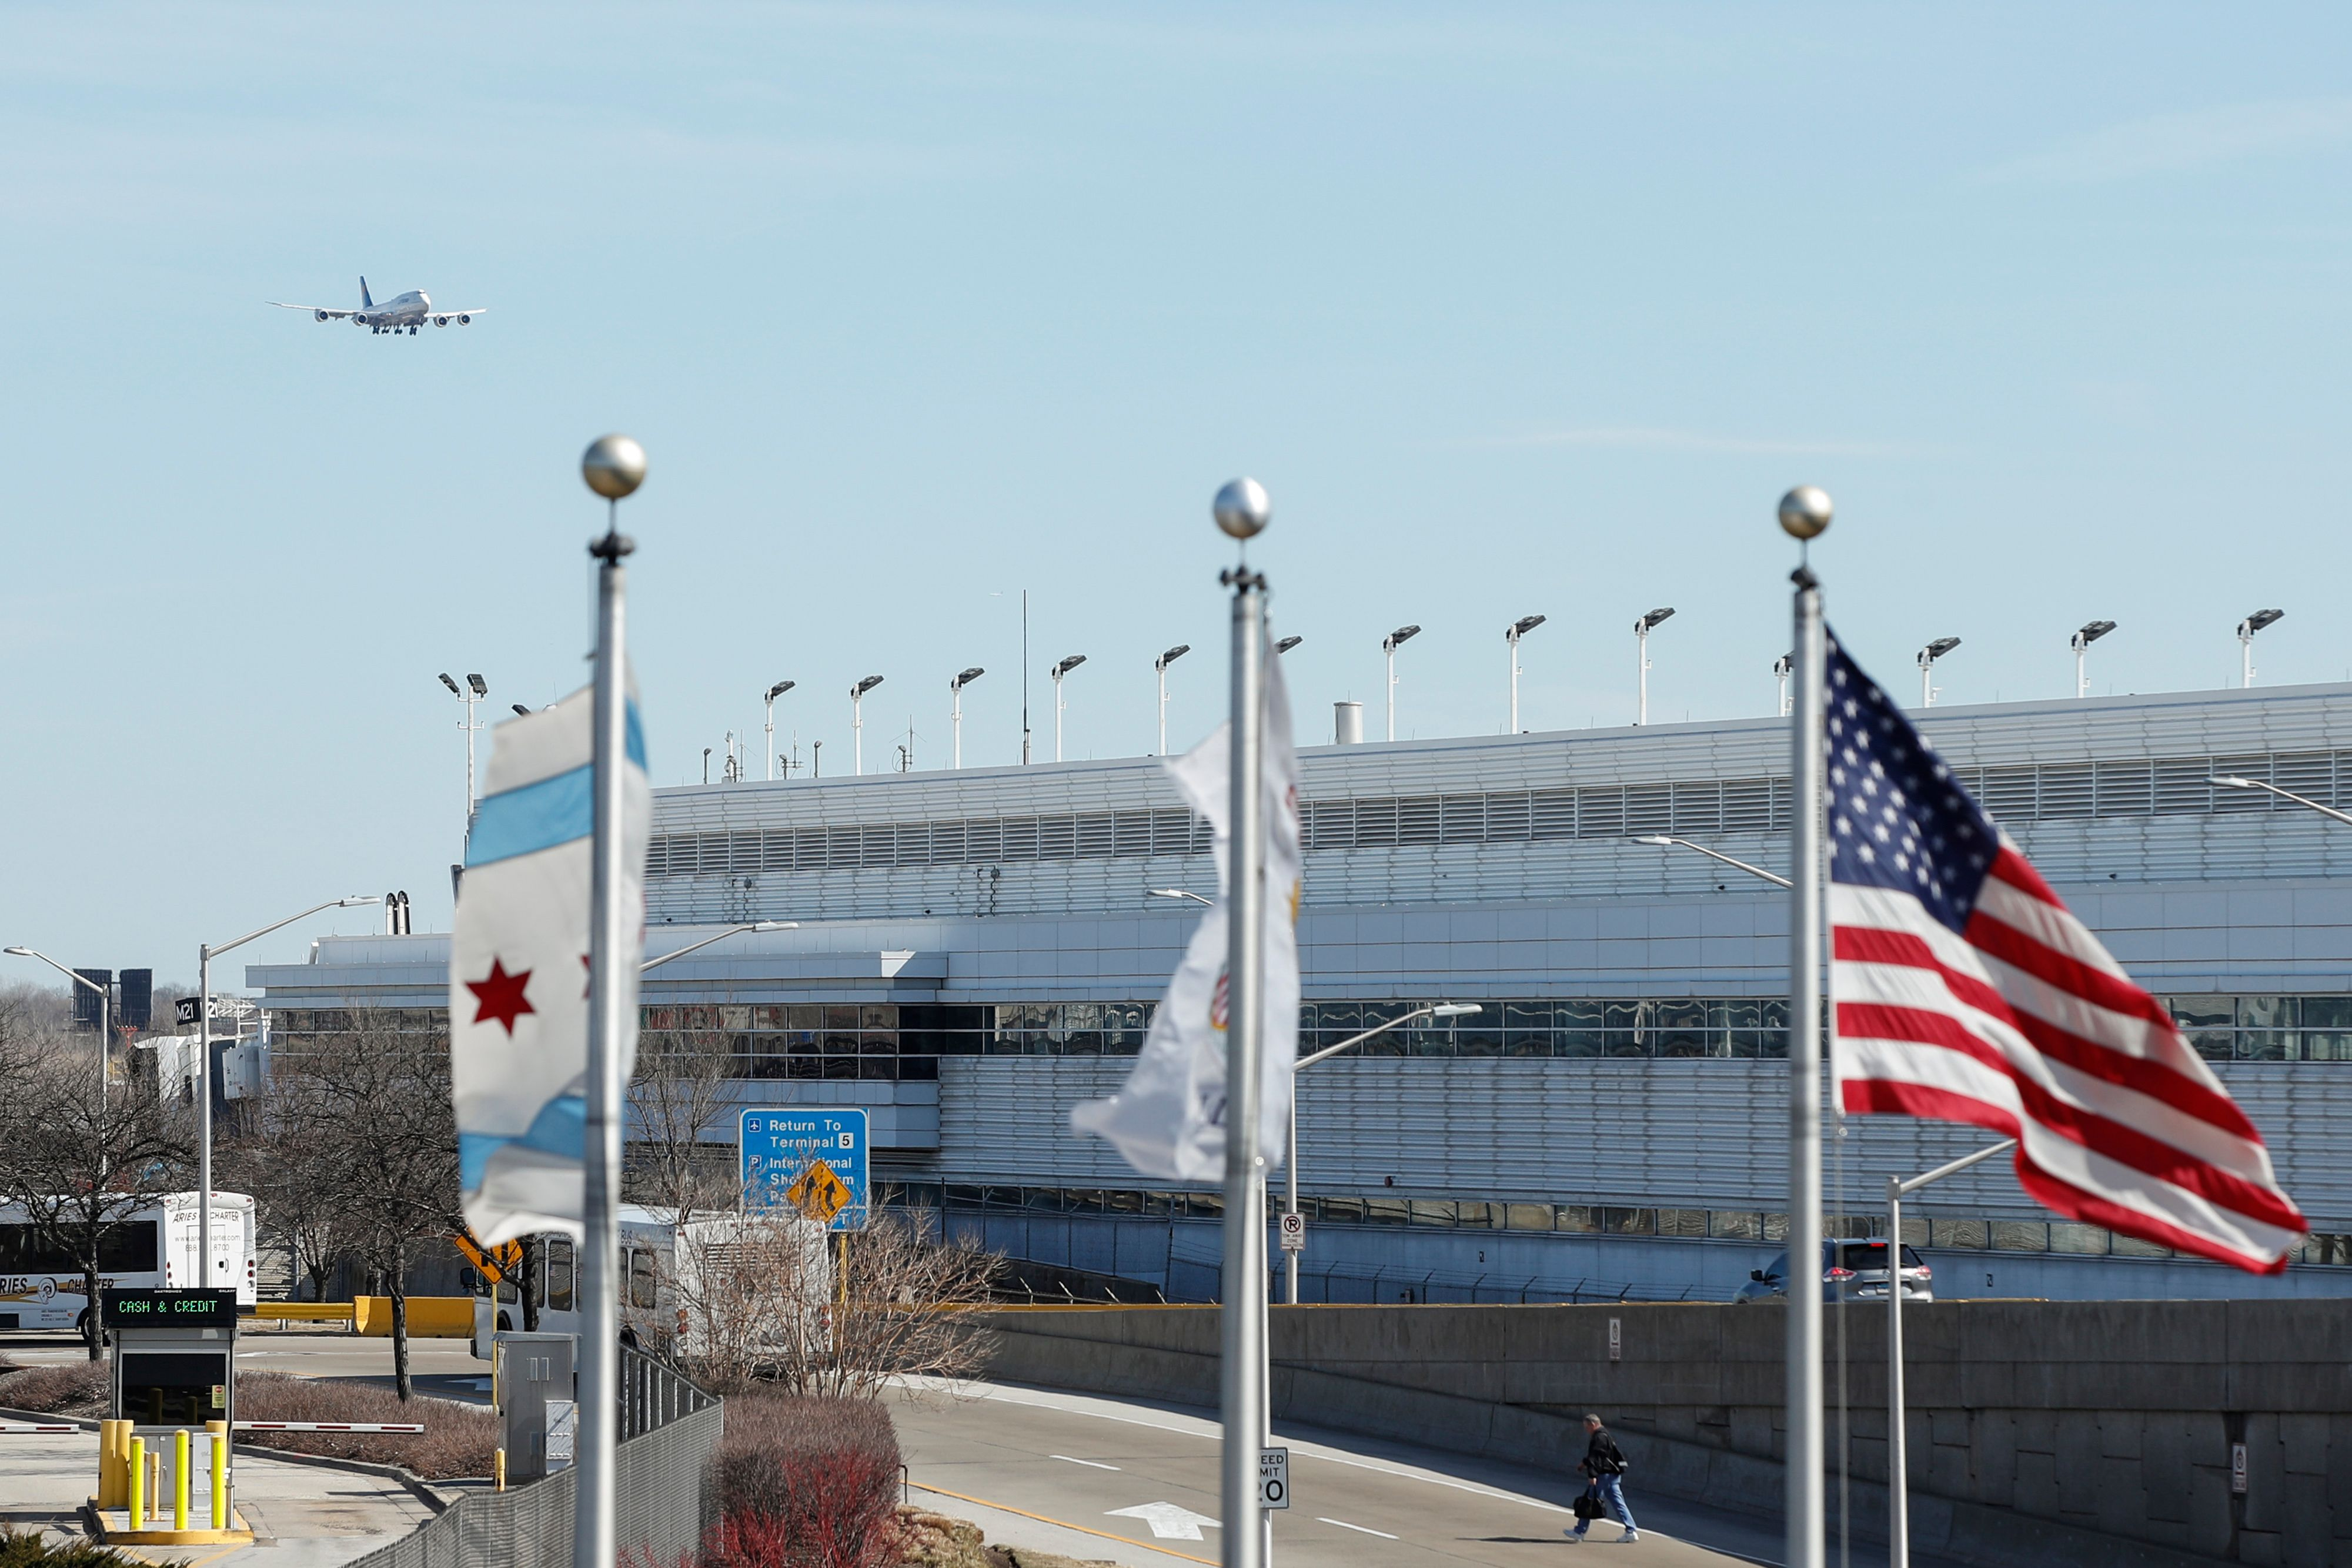 A view of Chicago O'Hare airport as a jet is flying in. The flags of Chicago, Illinois, and the United States fly in the foreground.